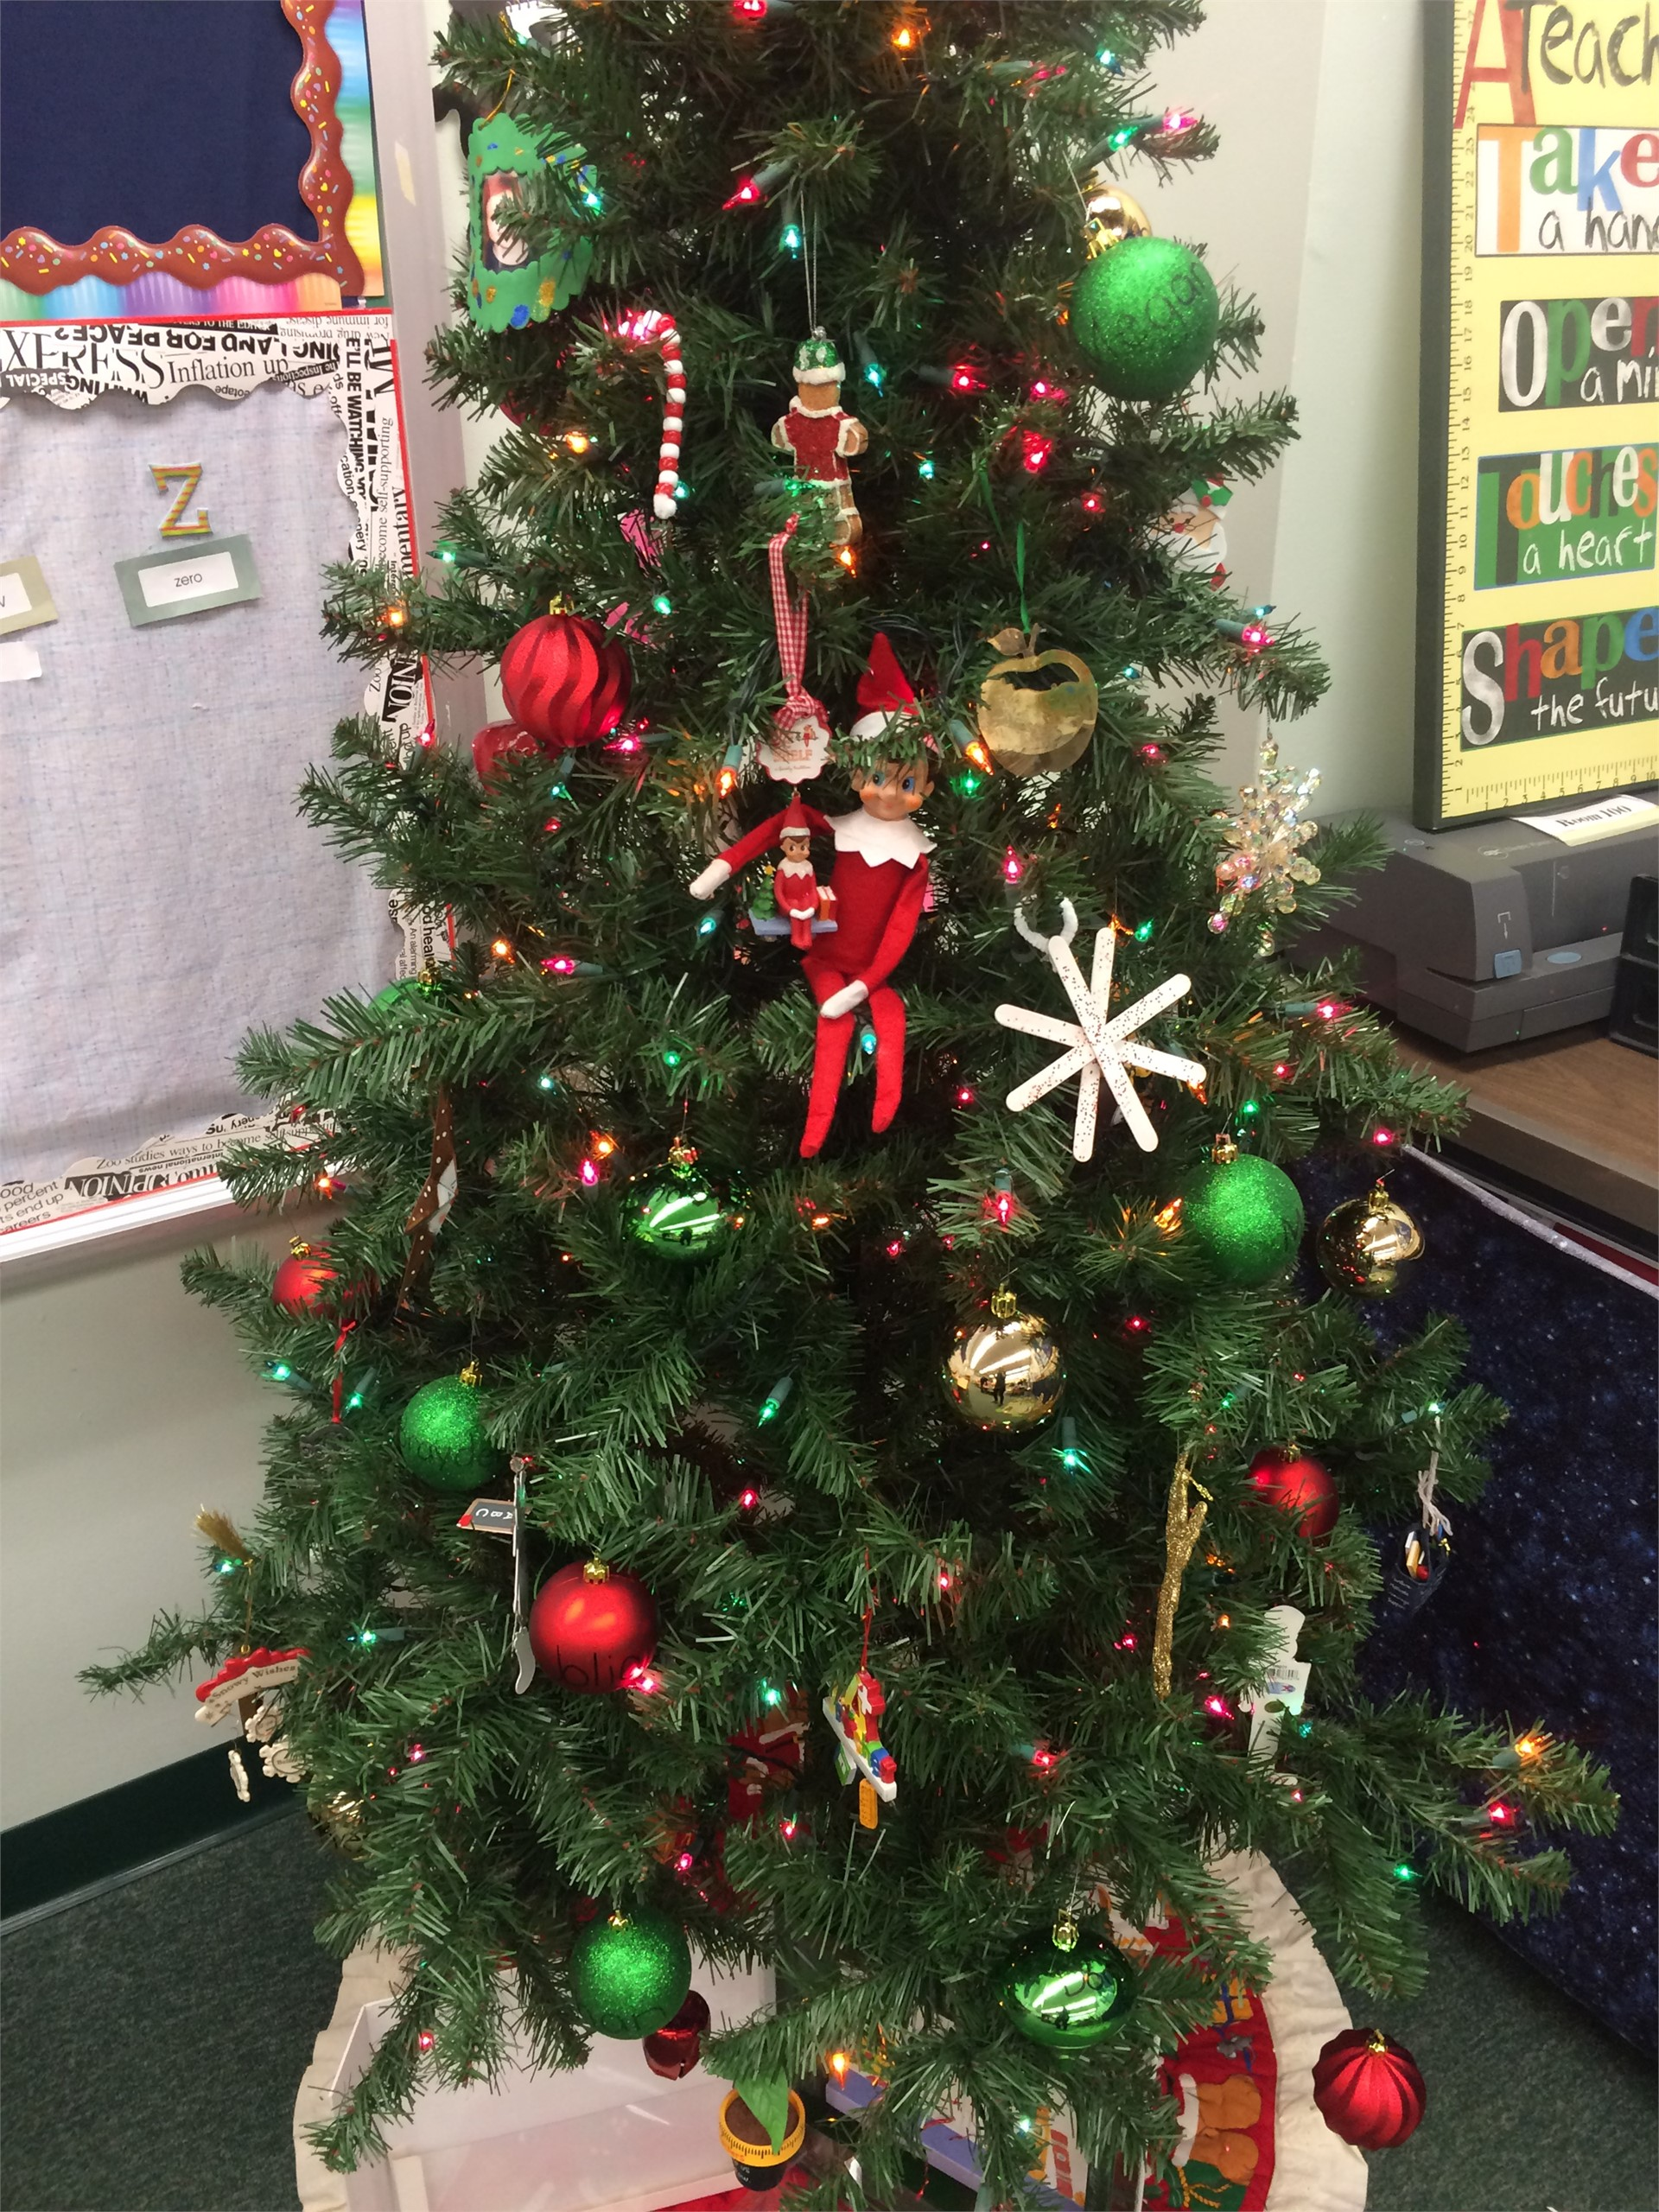 Room 100 Tree with our Elf on the Shelf Charley